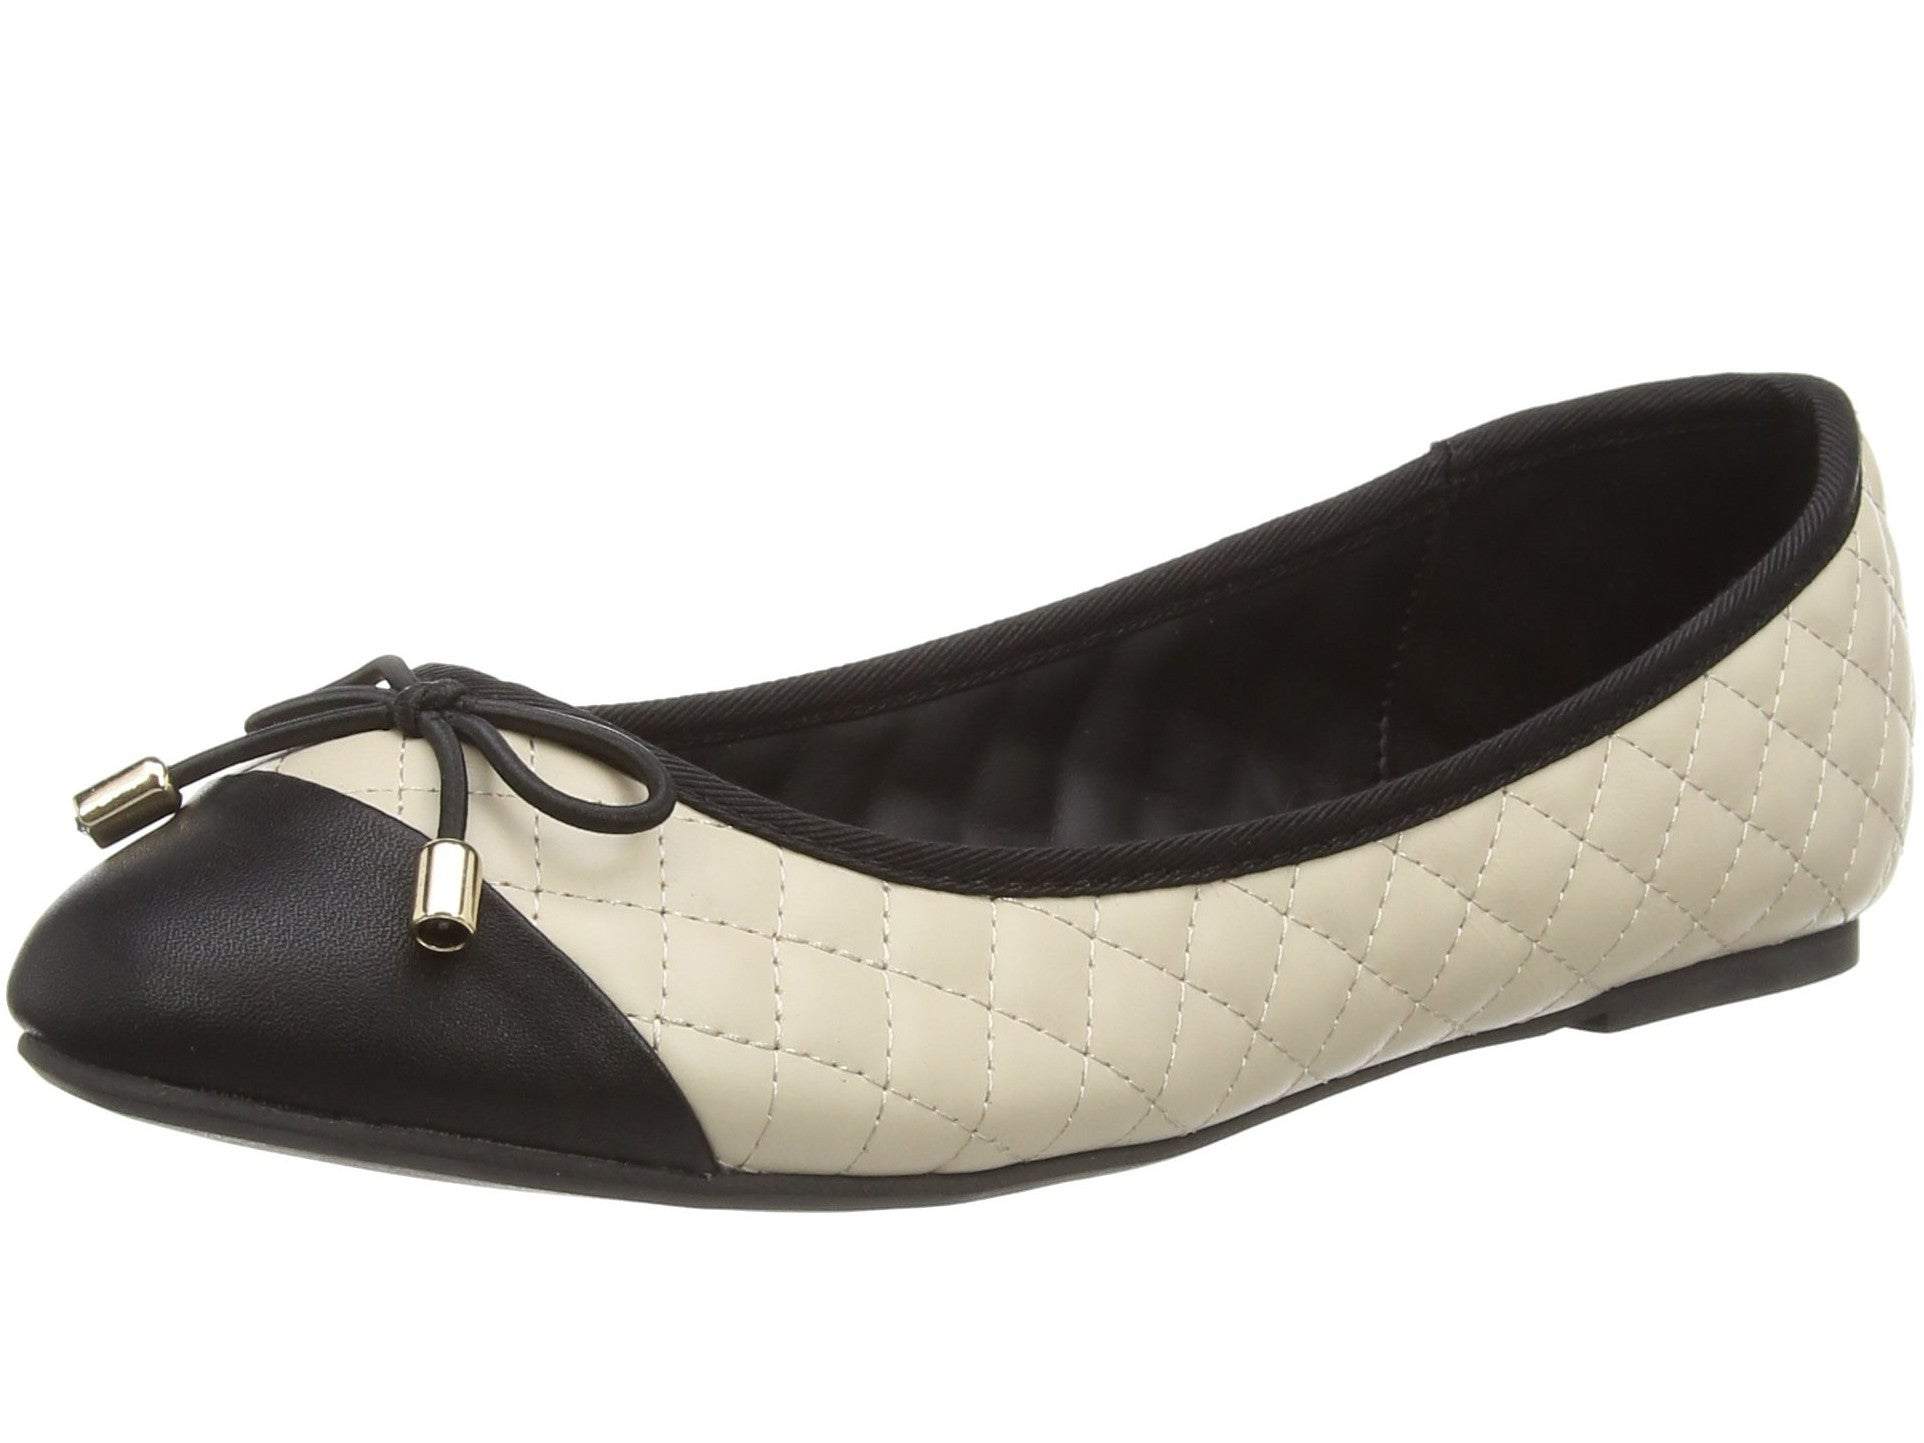 9 Best Ballerina Flats The Independent